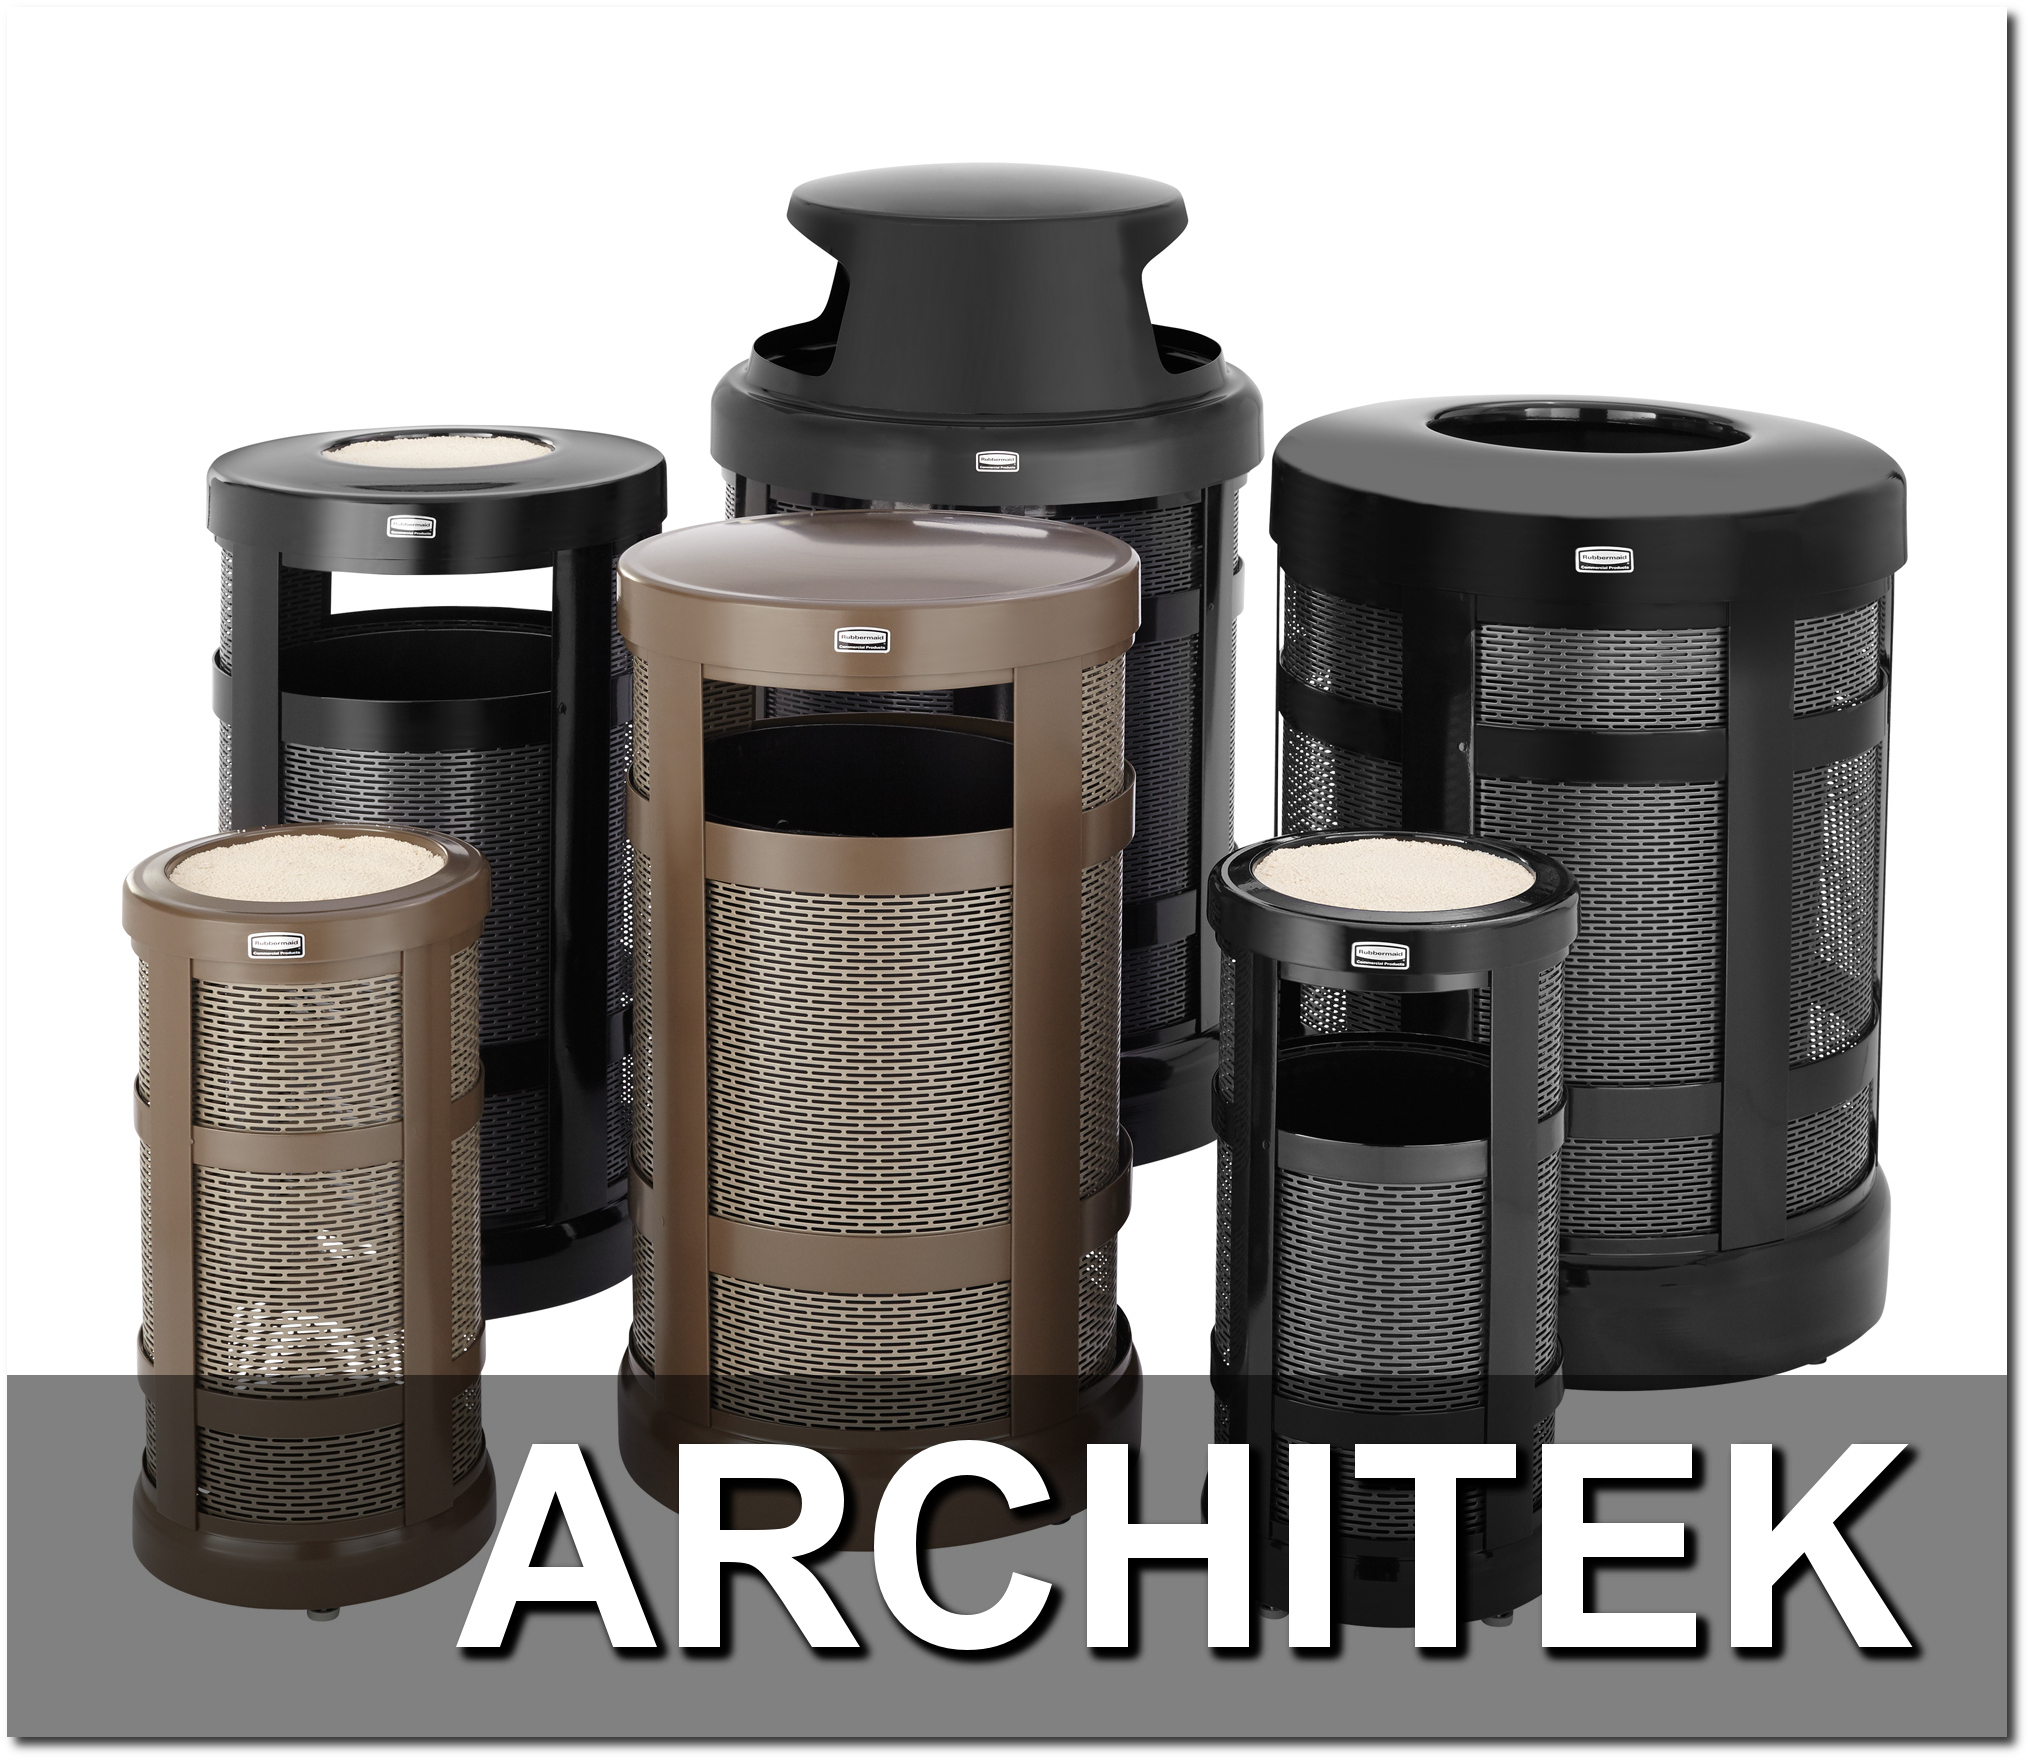 Architek Series Trash Receptacles